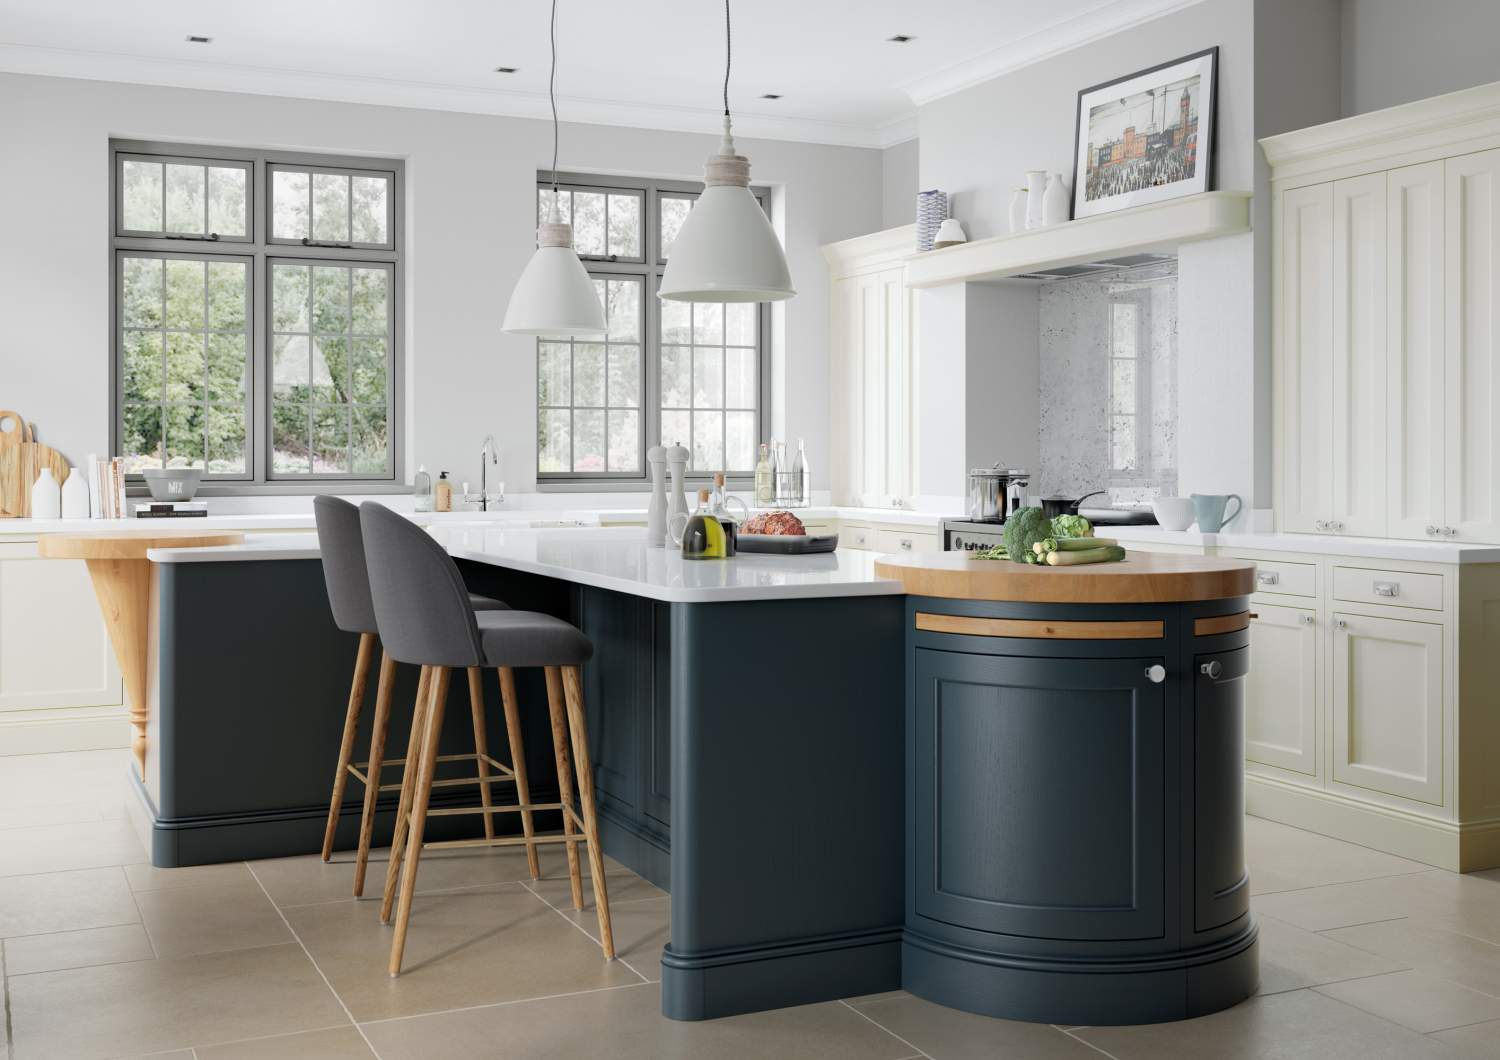 Solid Wood Inframe kitchen – Belgravia Dark Blue and Porcelain